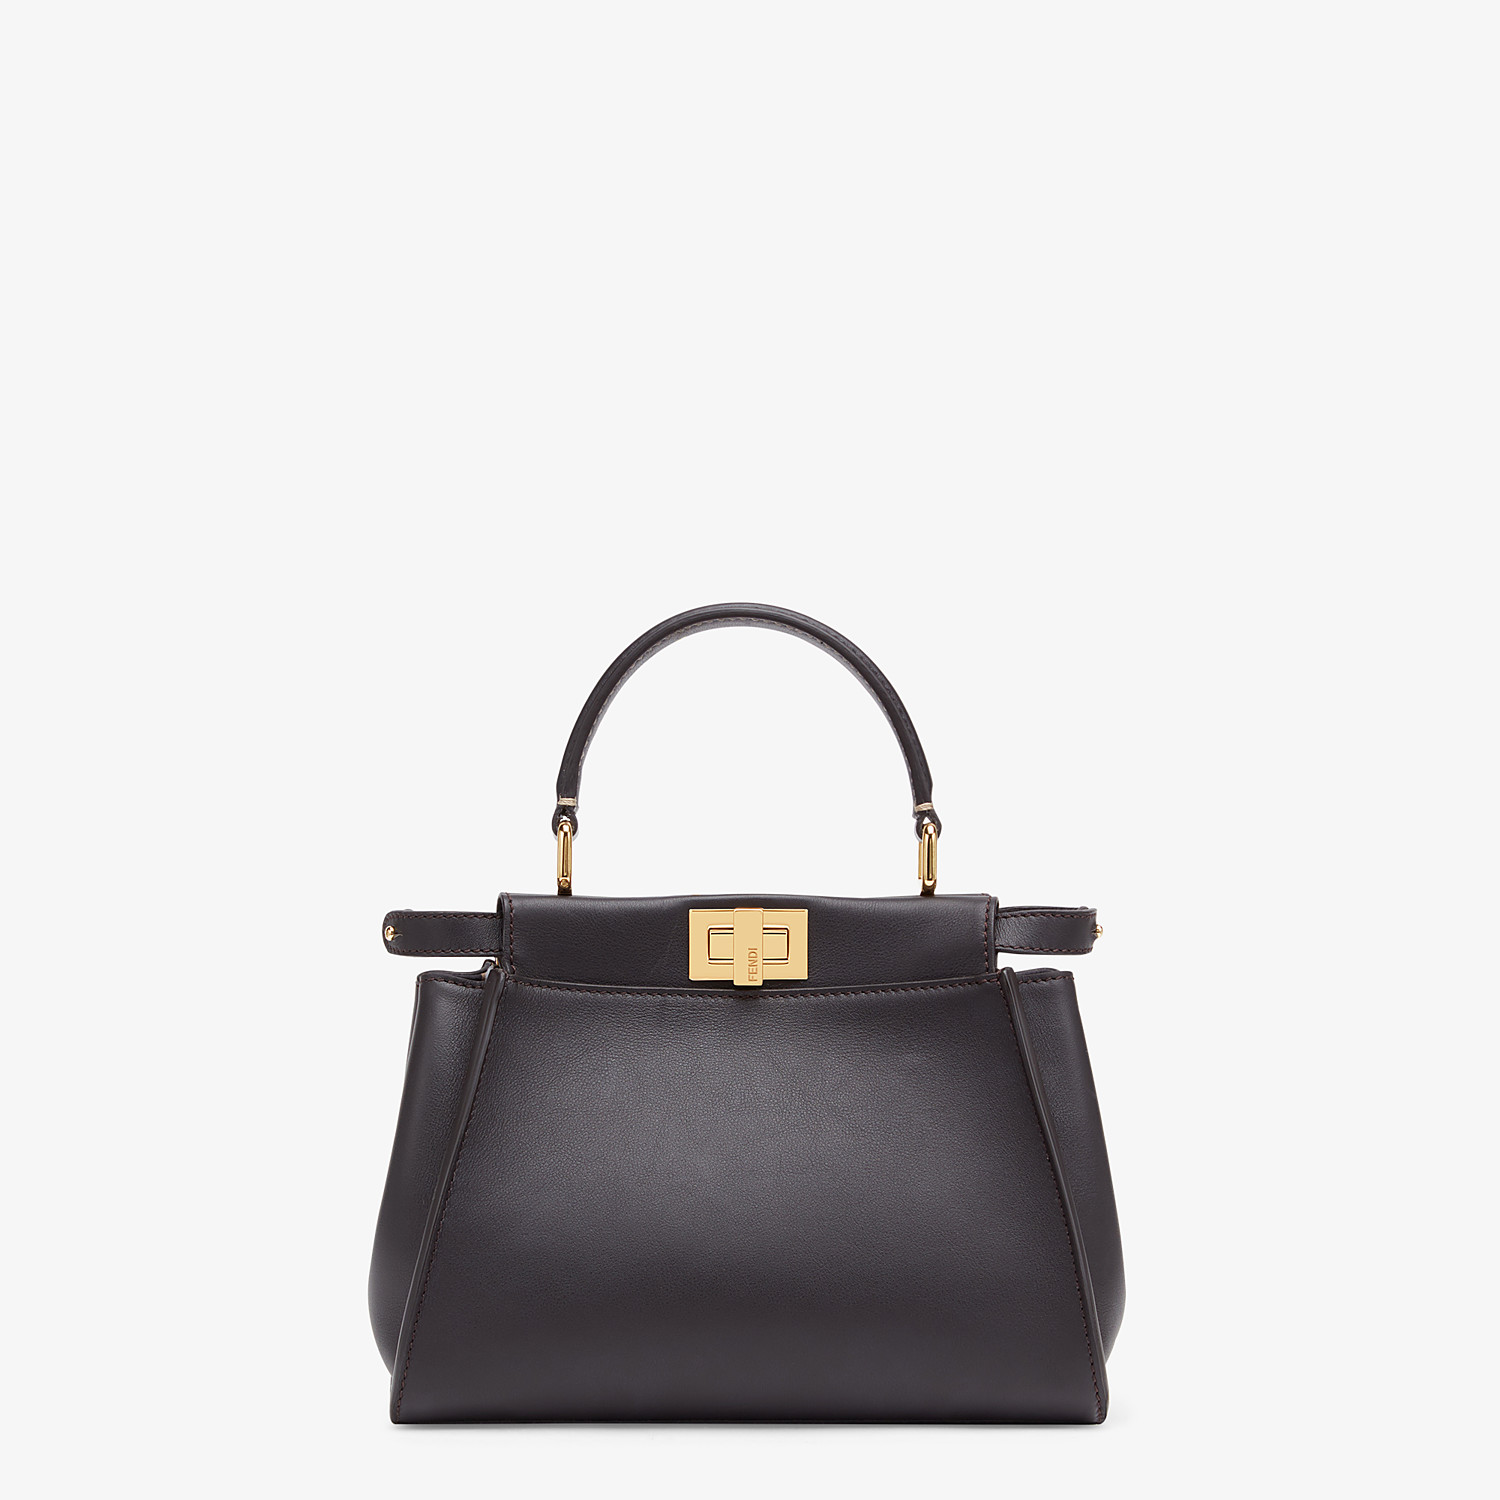 FENDI PEEKABOO ICONIC MINI - Brown leather bag - view 1 detail